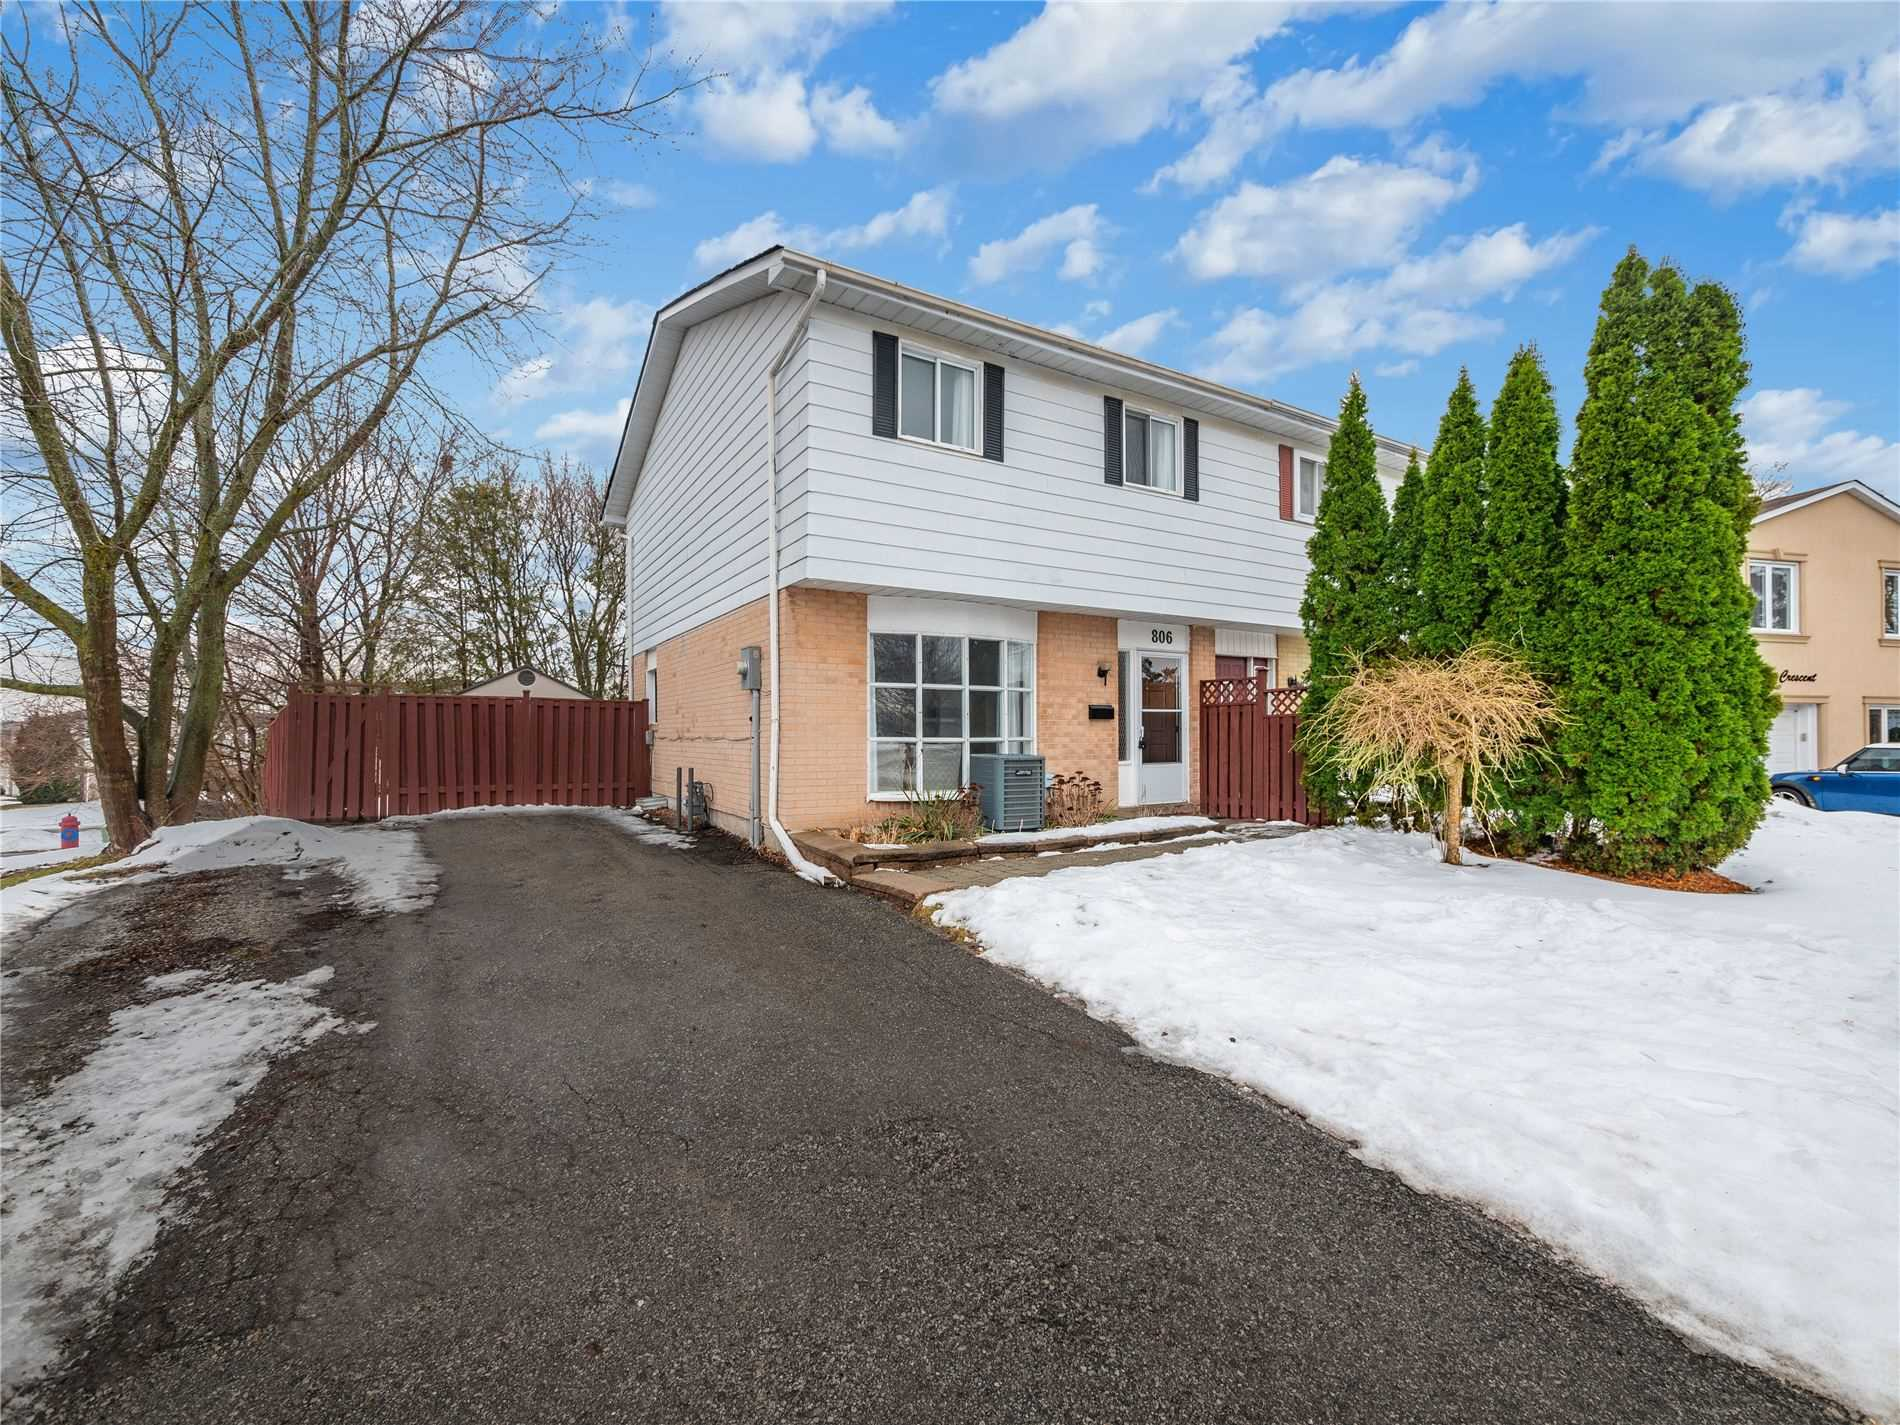 pictures of house for sale MLS: N4697625 located at 806 Pam Cres, Newmarket L3Y5B6